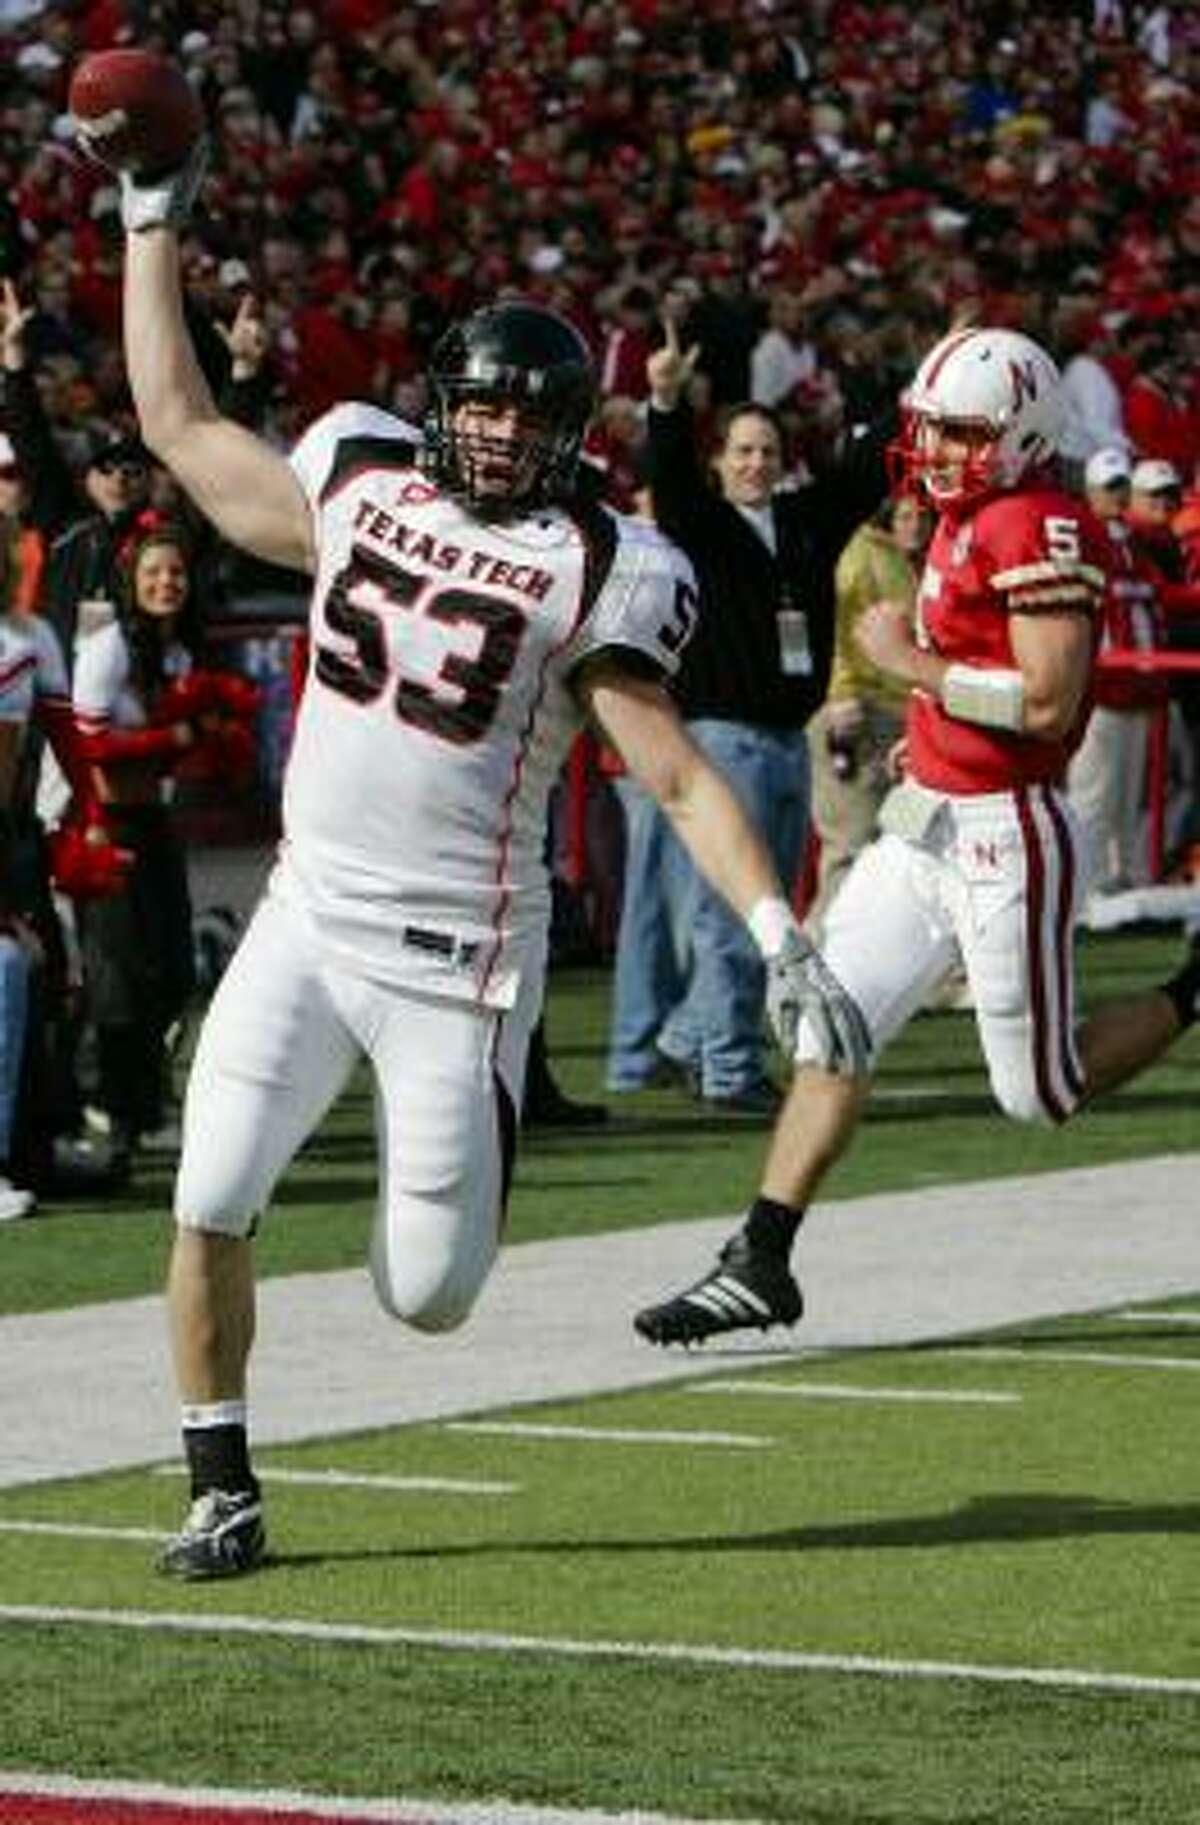 Texas Tech's Daniel Howard celebrates his touchdown after picking up a loose ball in the first half.